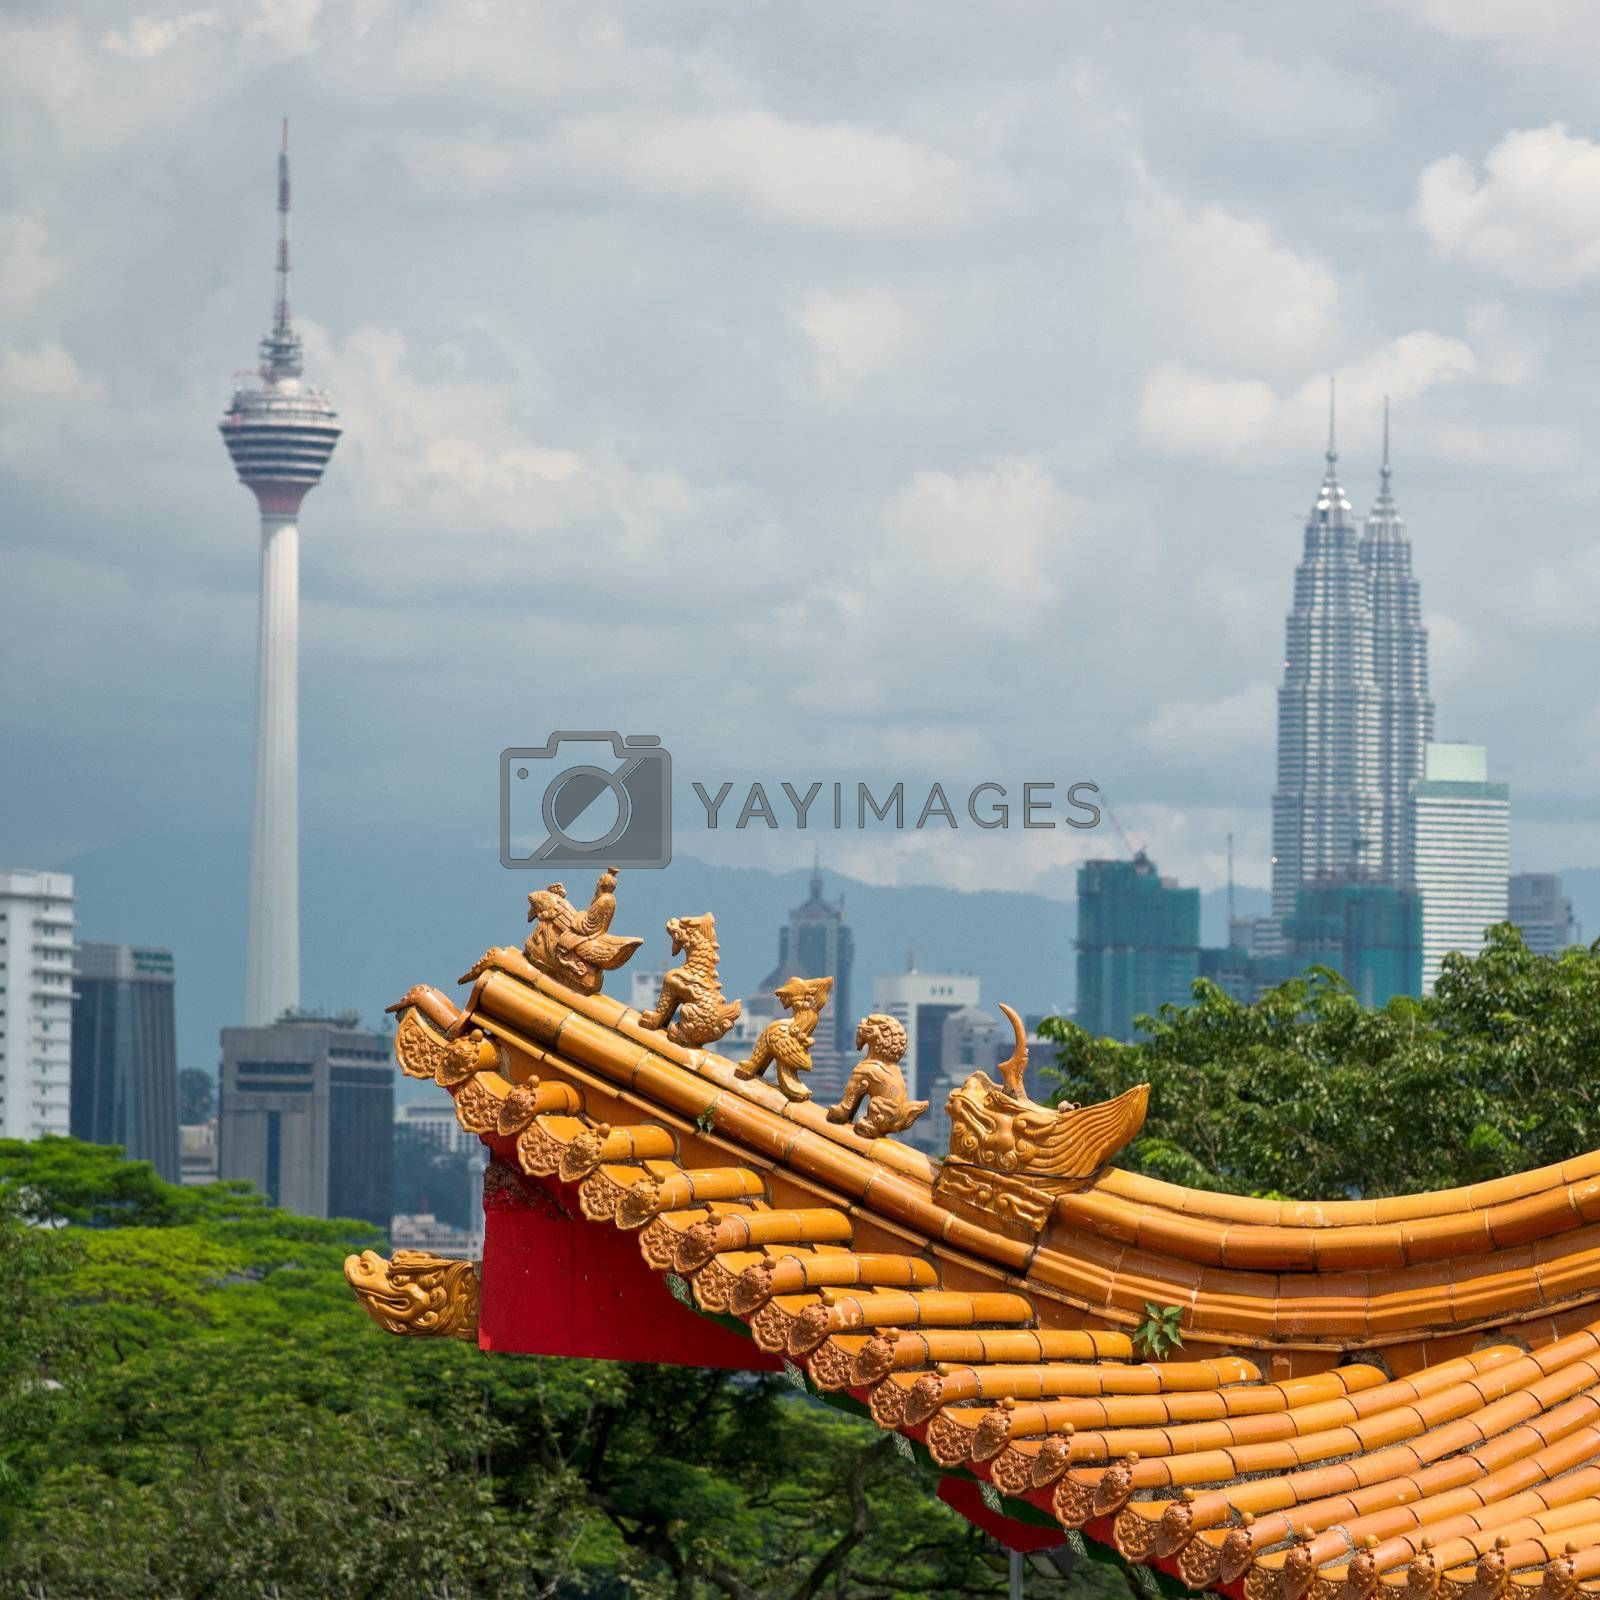 Mixture of architectural styles in Kuala Lumpur, Malaysia.  The roof of ancient chinese temple on the background of two symbols of Kuala Lumpur - KL Tower and Petronas Twin Towers.